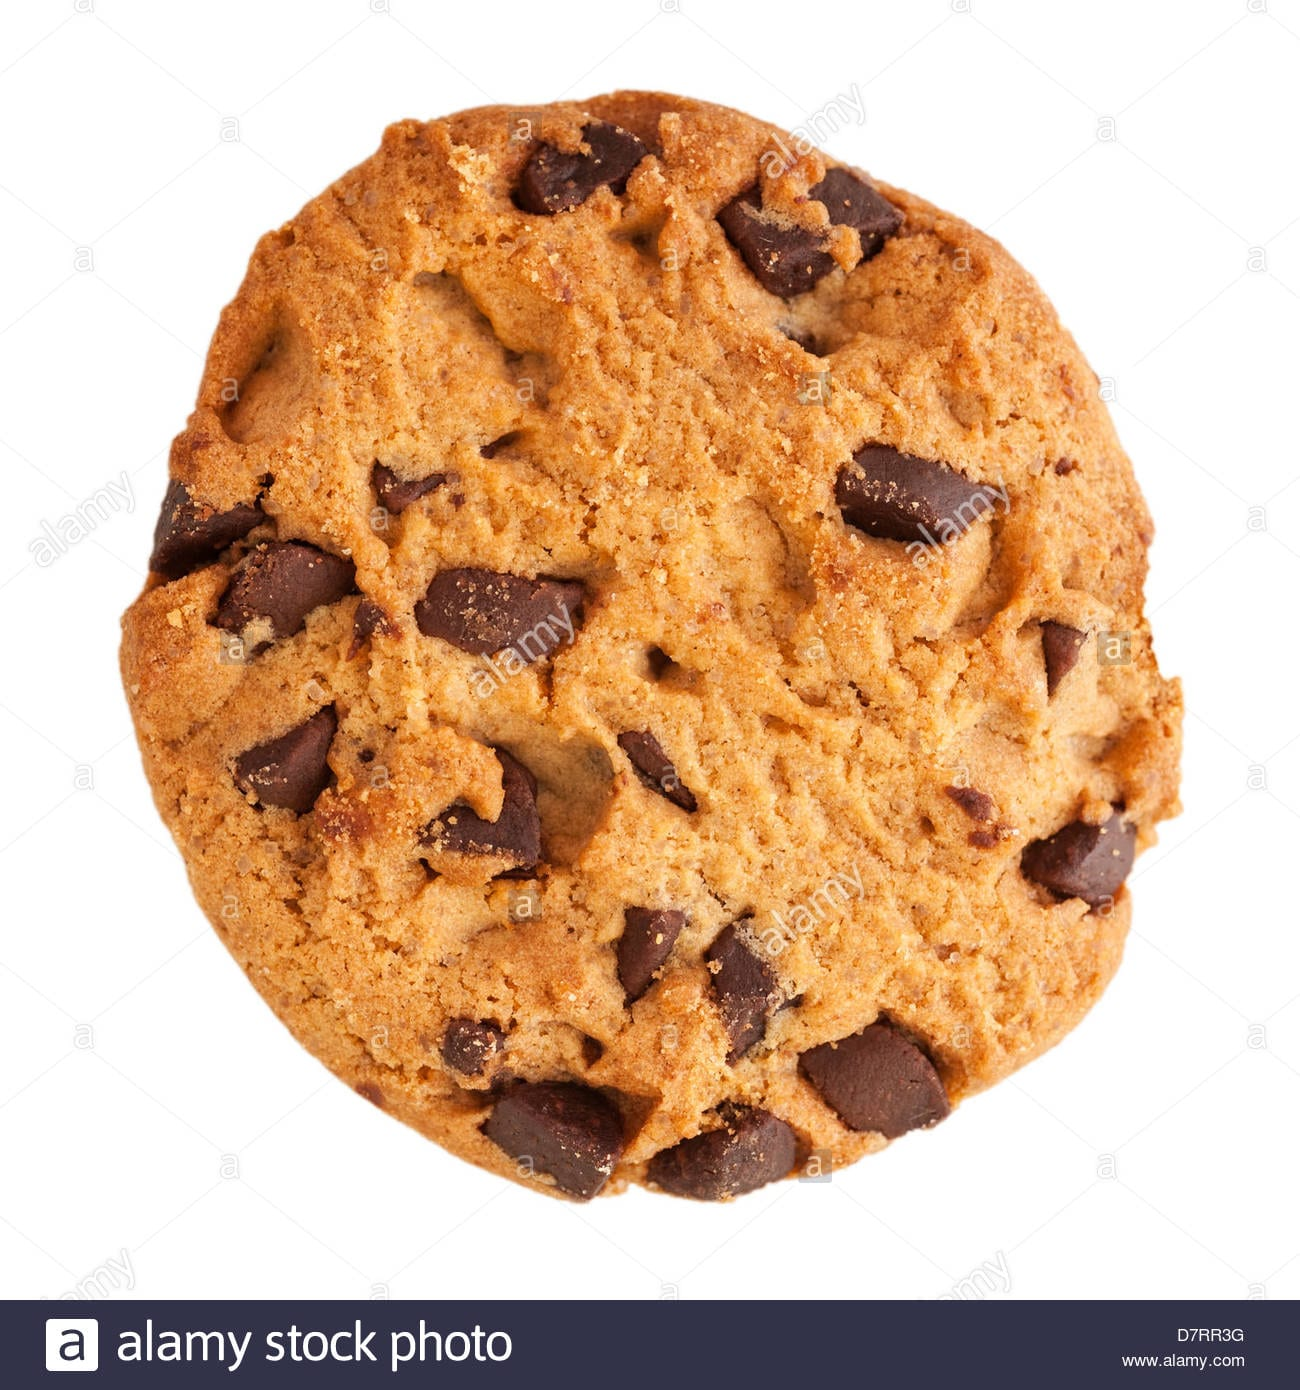 A Chocolate Choc Chip Cookie On A White Background Stock Photo